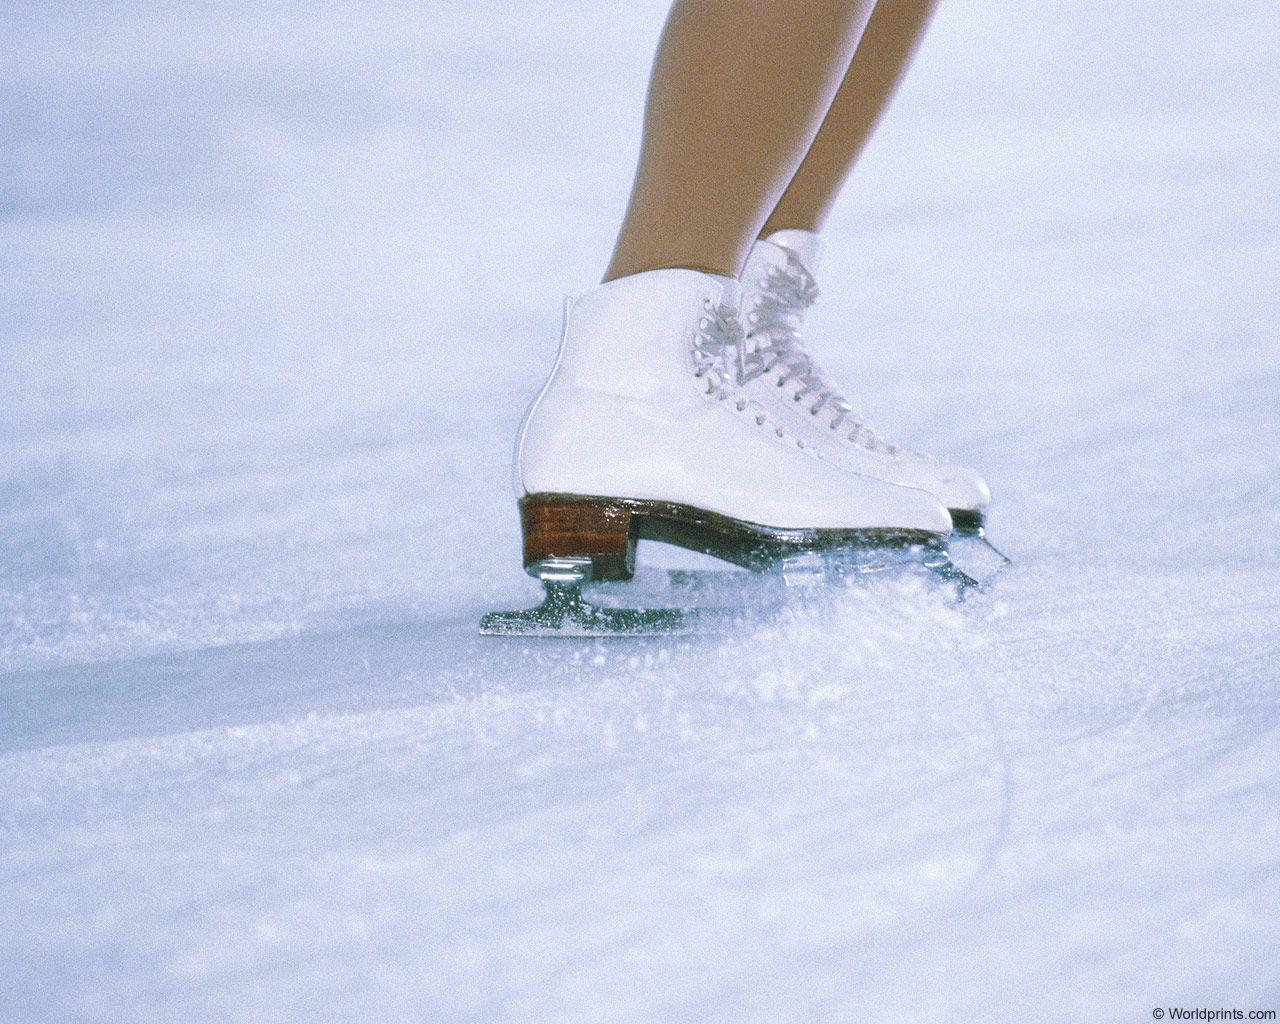 Ice Skate Wallpaper Posted By John Simpson